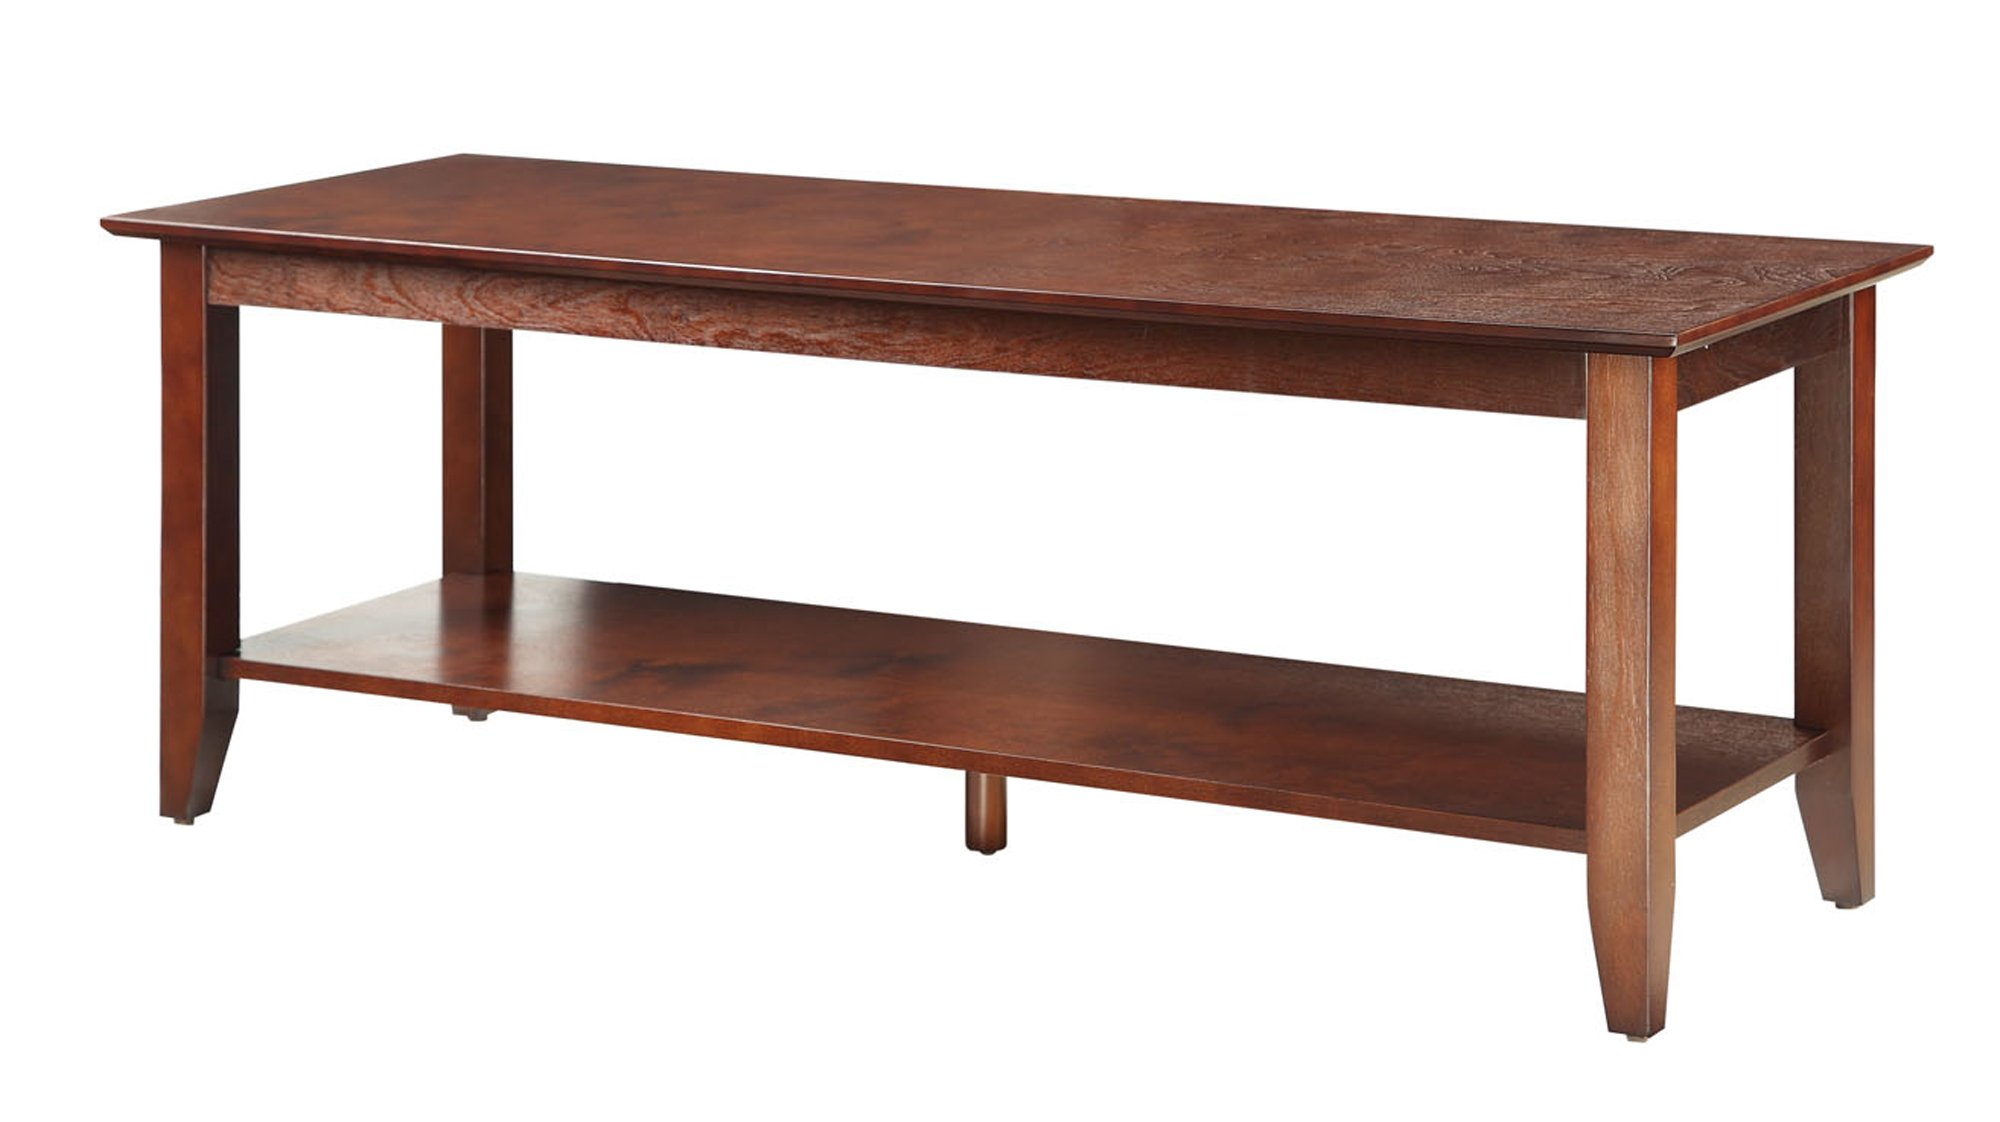 Convenience Concepts American Heritage Coffee Table with Shelf, Espresso